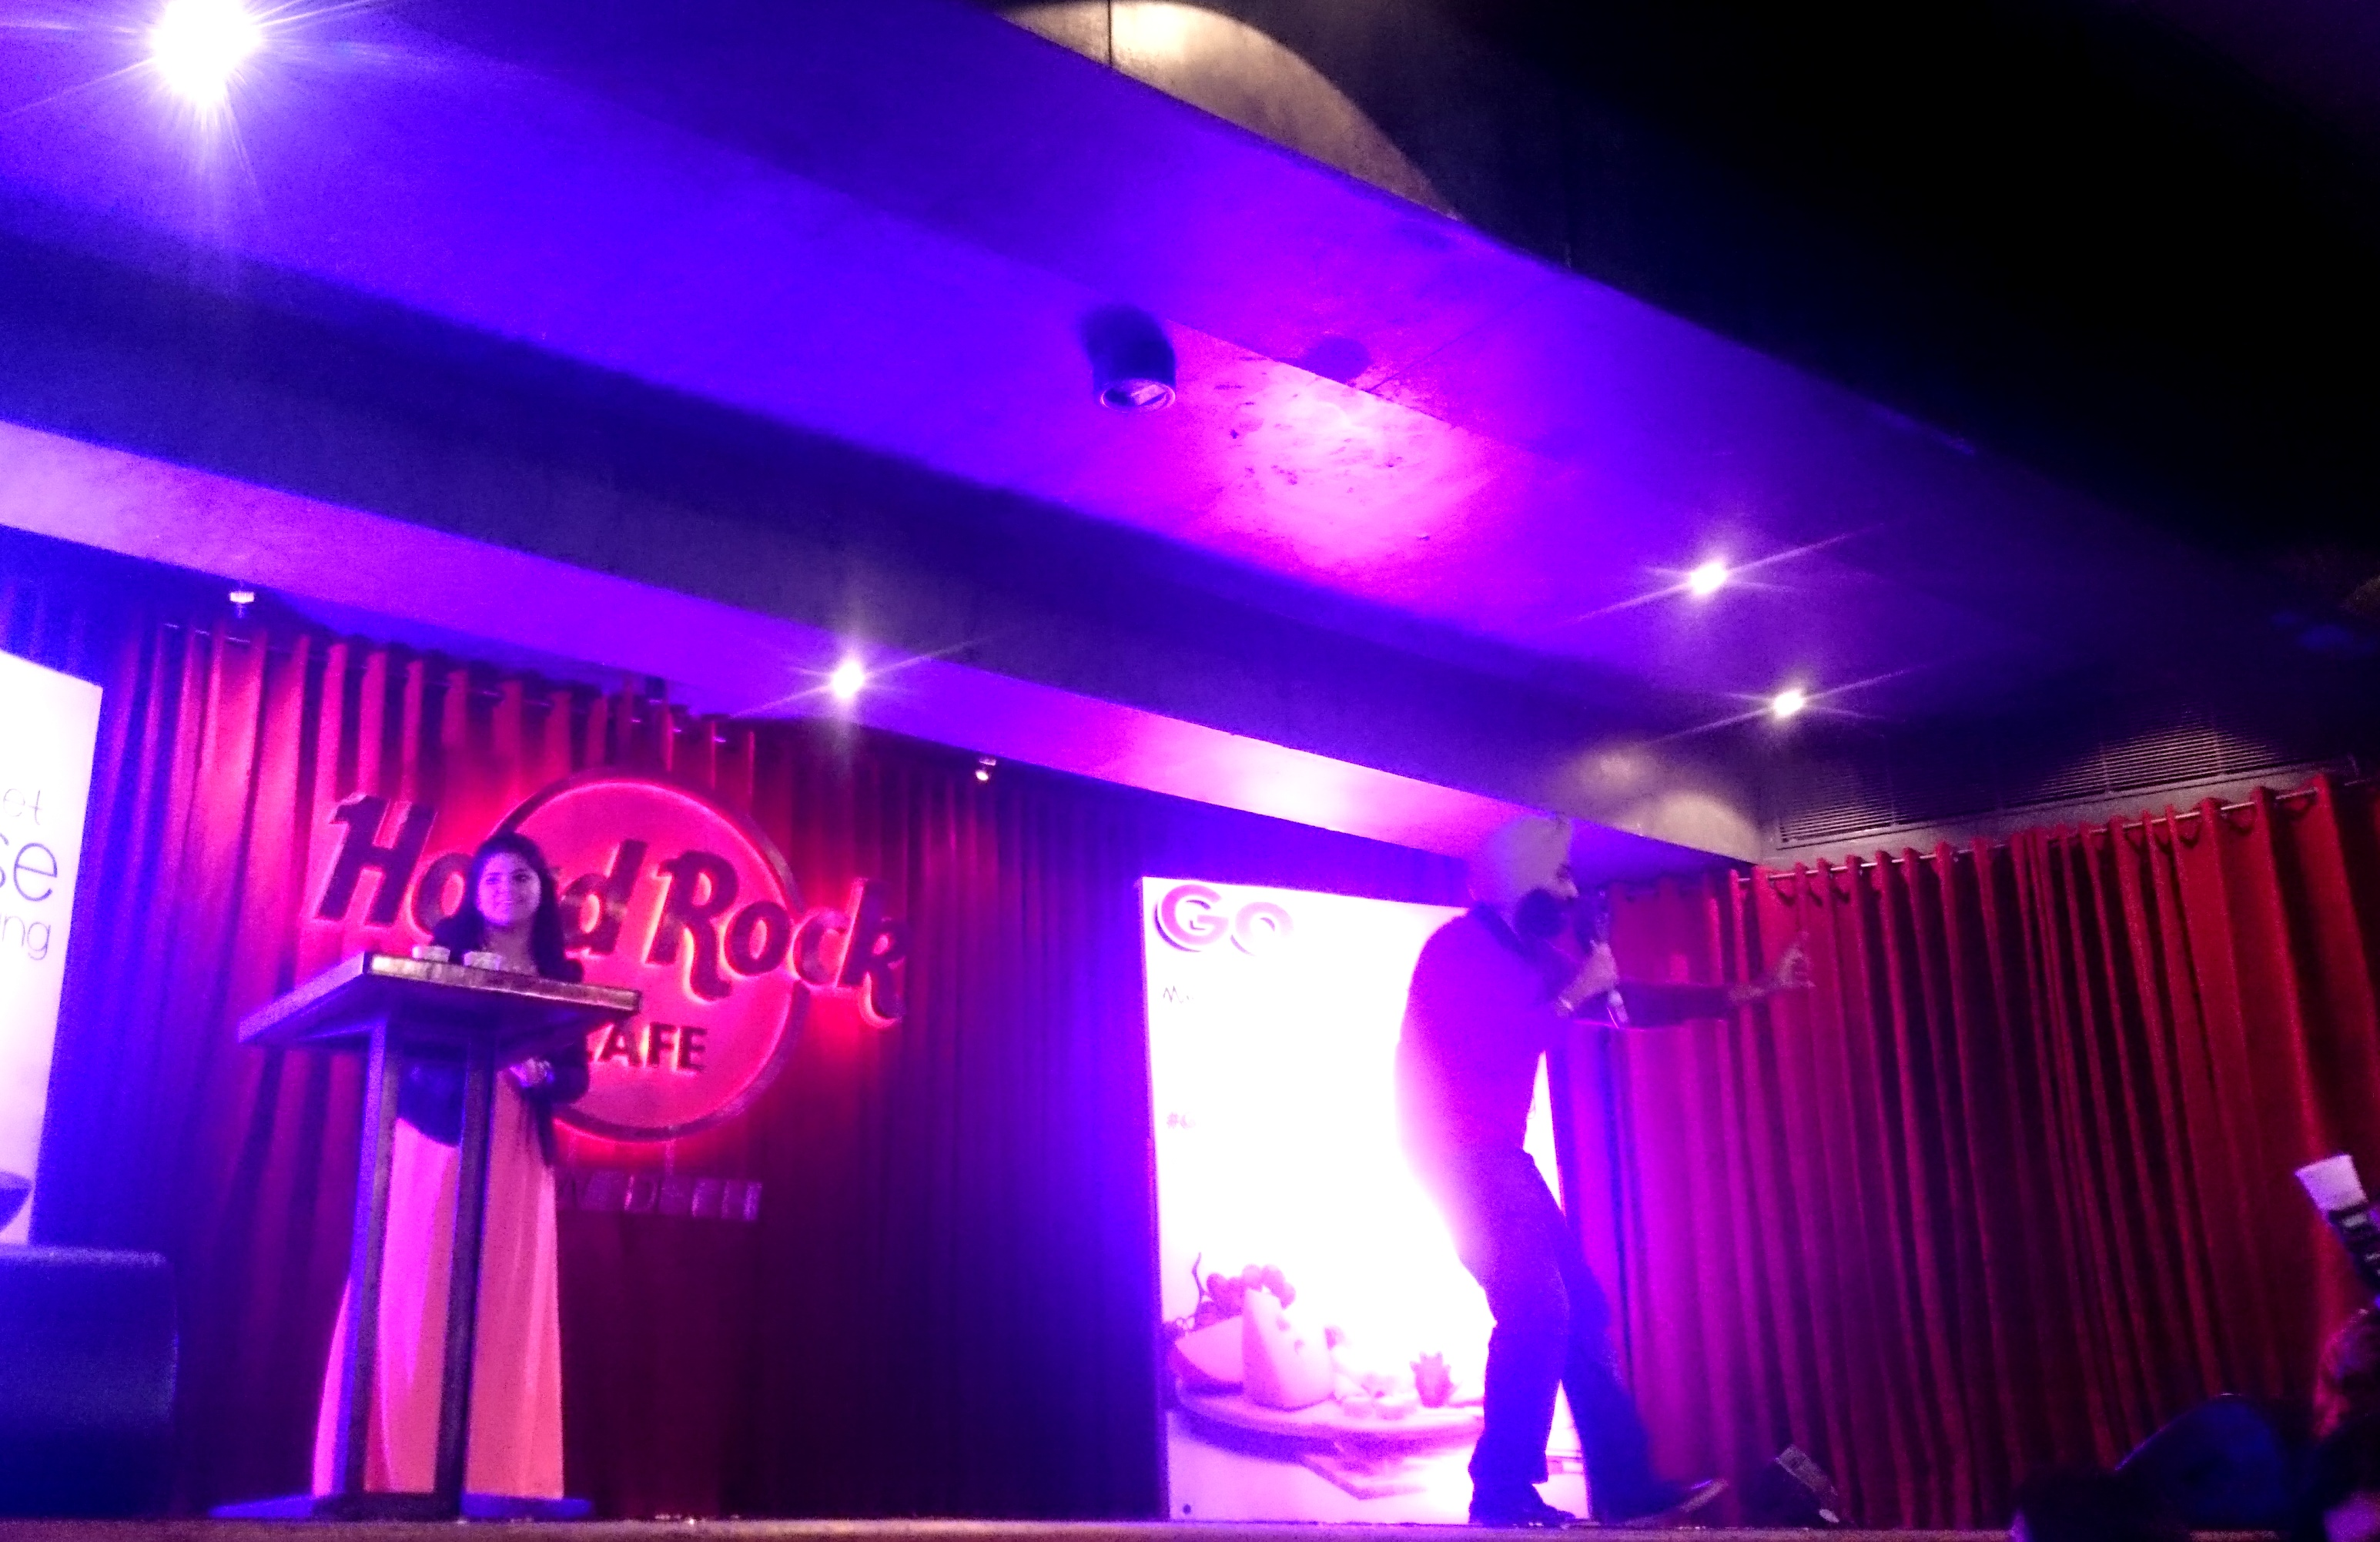 Stand-up comic artist Vikramjit Singh